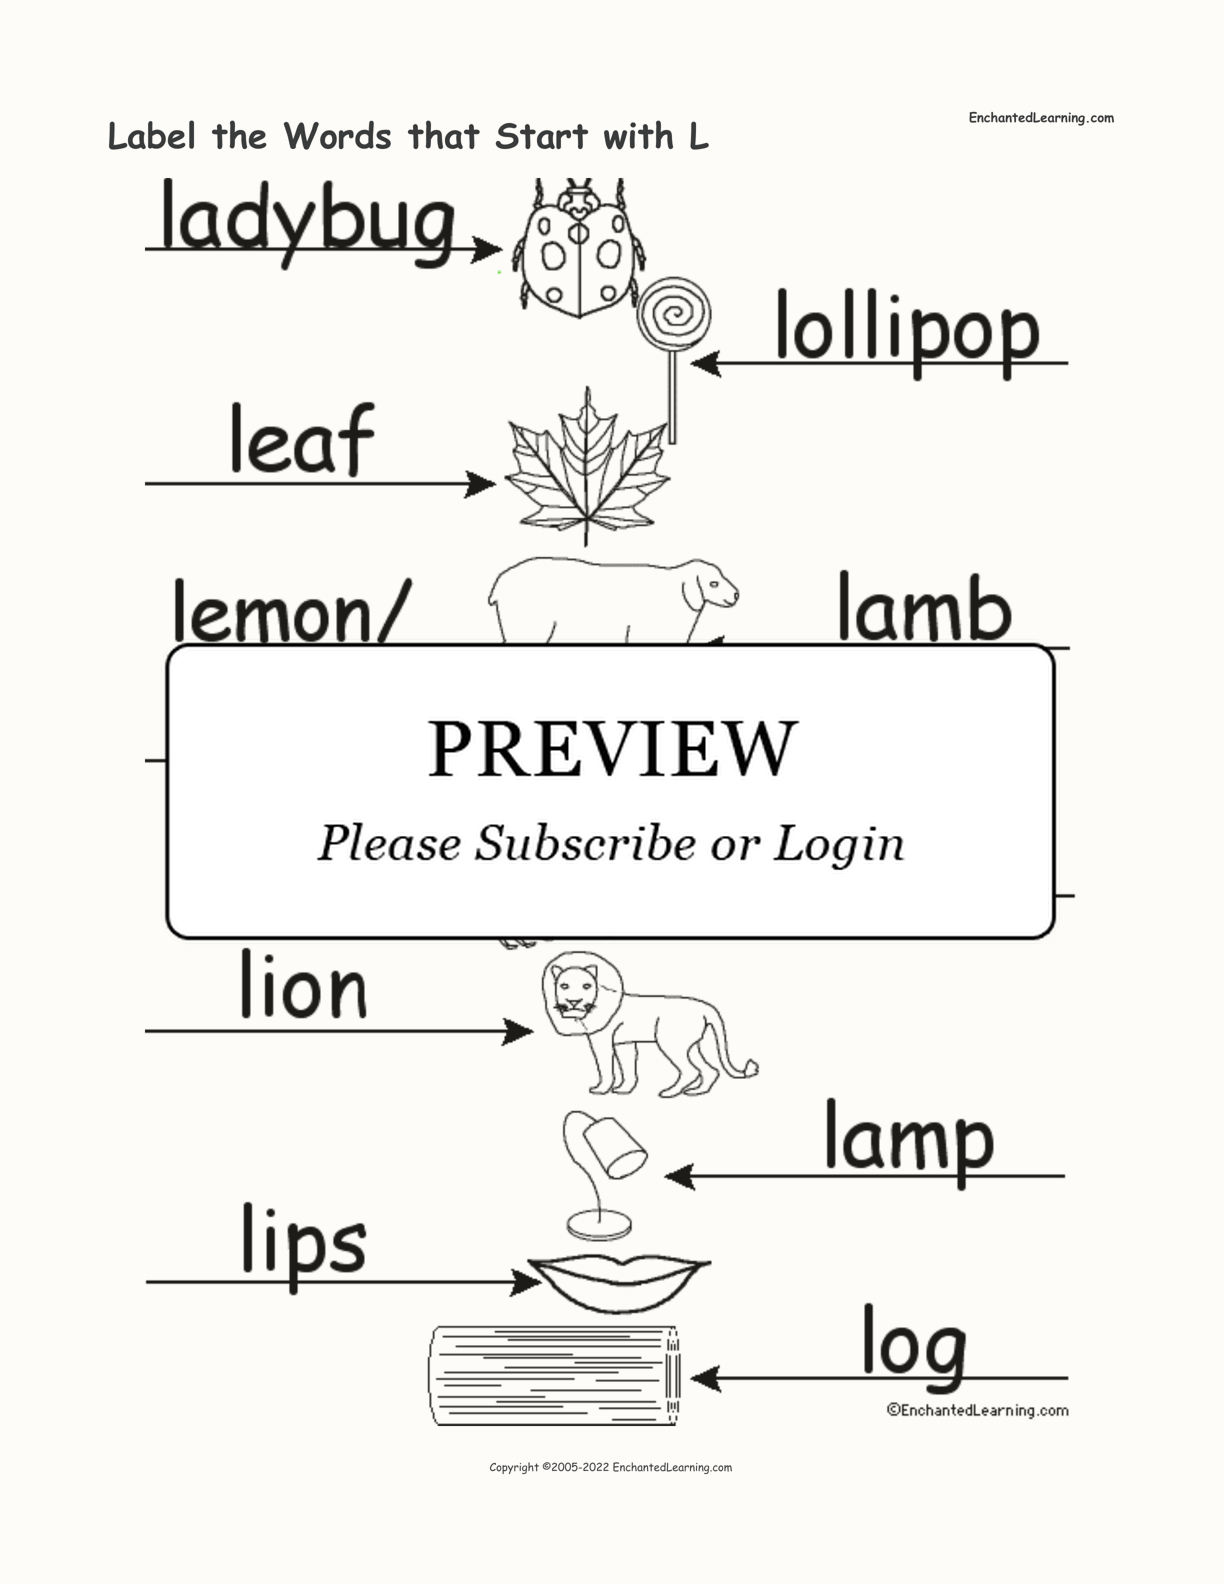 Label the Words that Start with L interactive worksheet page 2